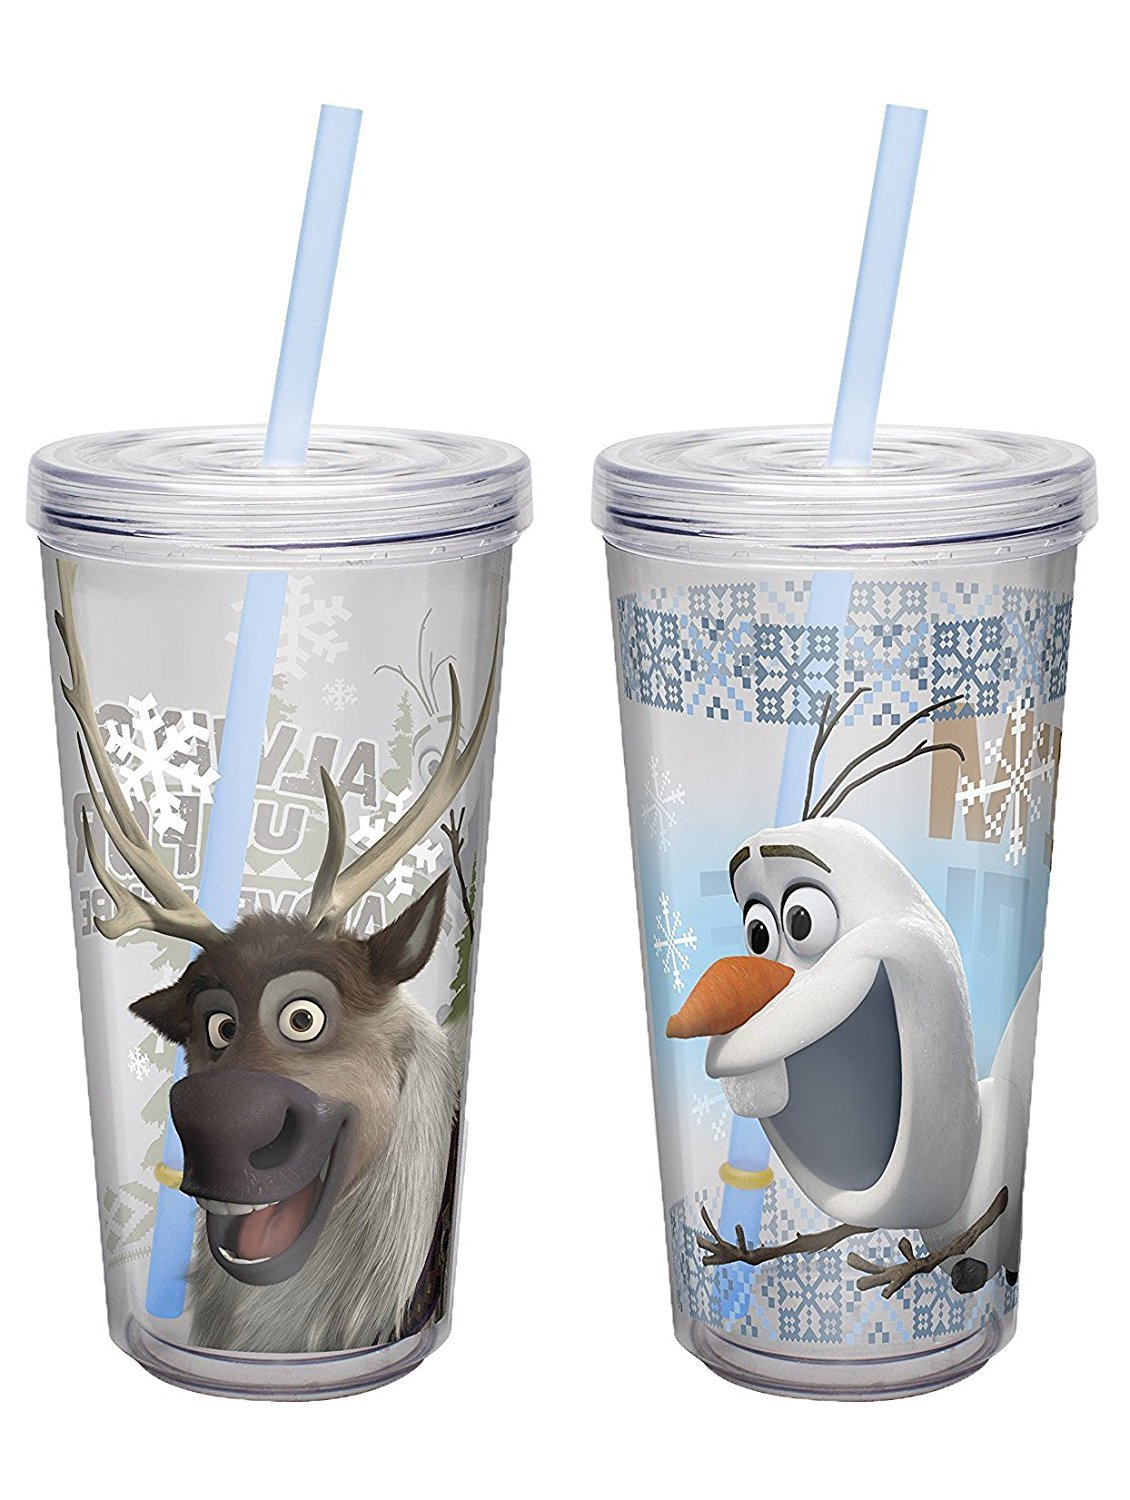 Insulated Tumbler with Screw-on Lid and Straw featuring Sven & Olaf from Frozen, 16 oz